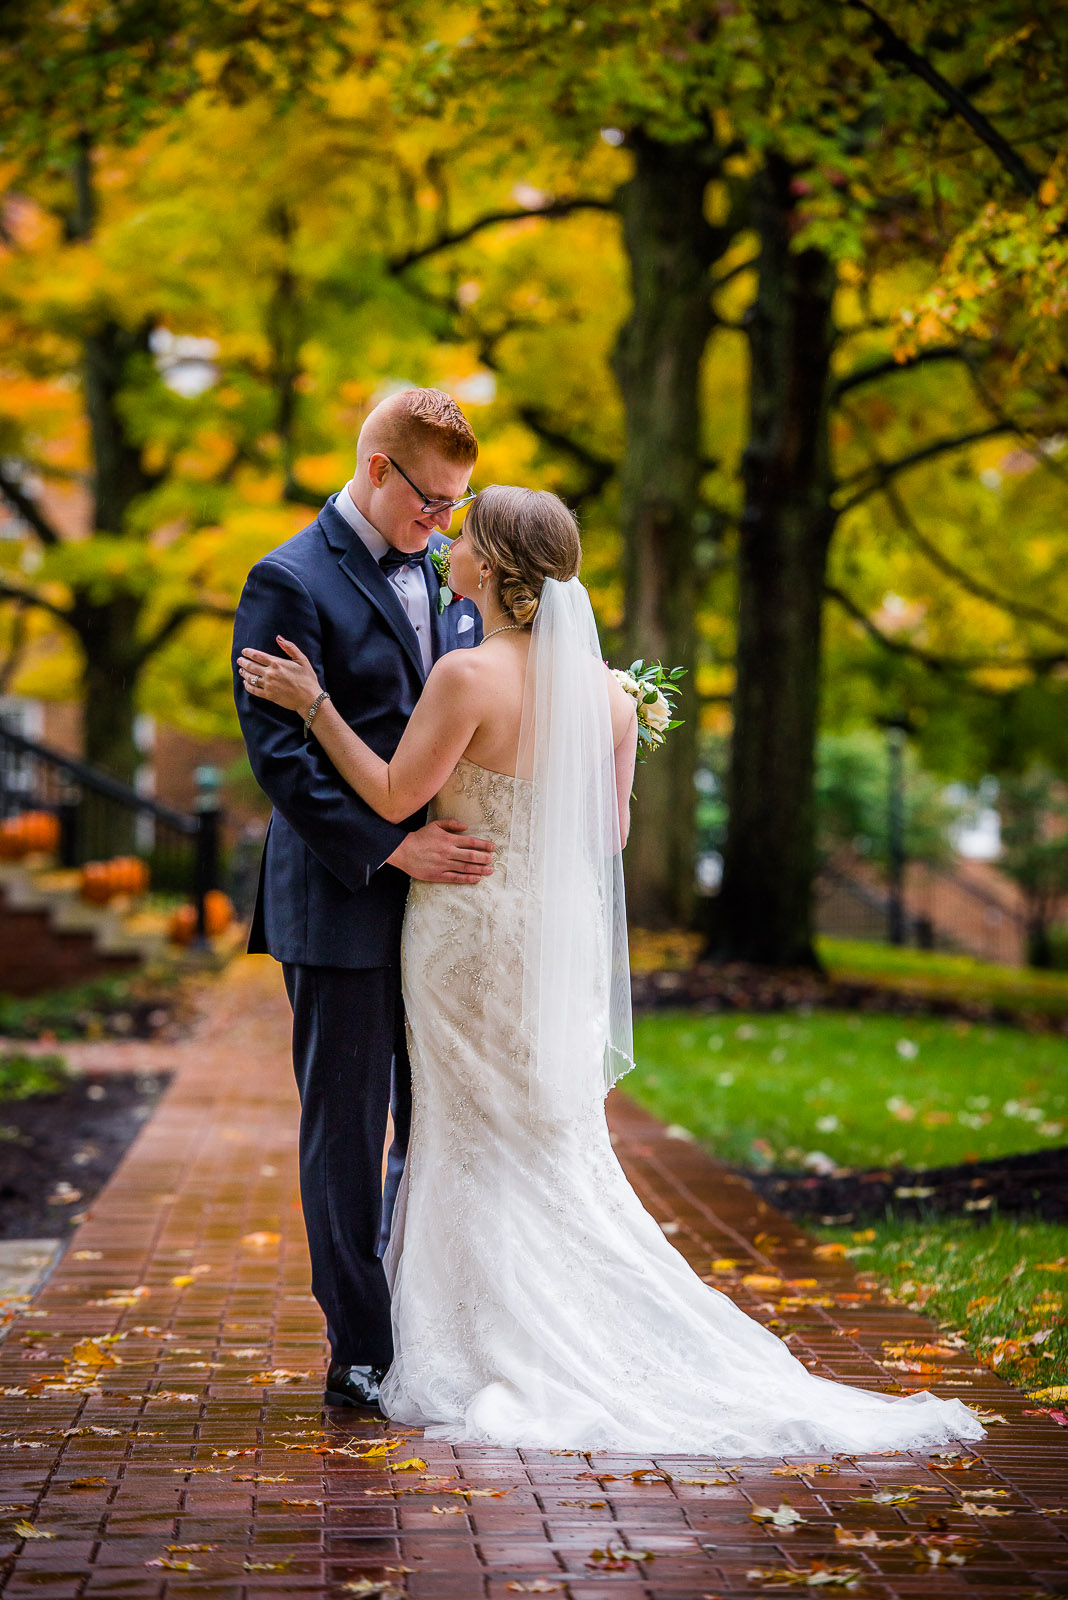 Eric_and_Christy_Photography_Blog_Wedding_Erica_Mike-49